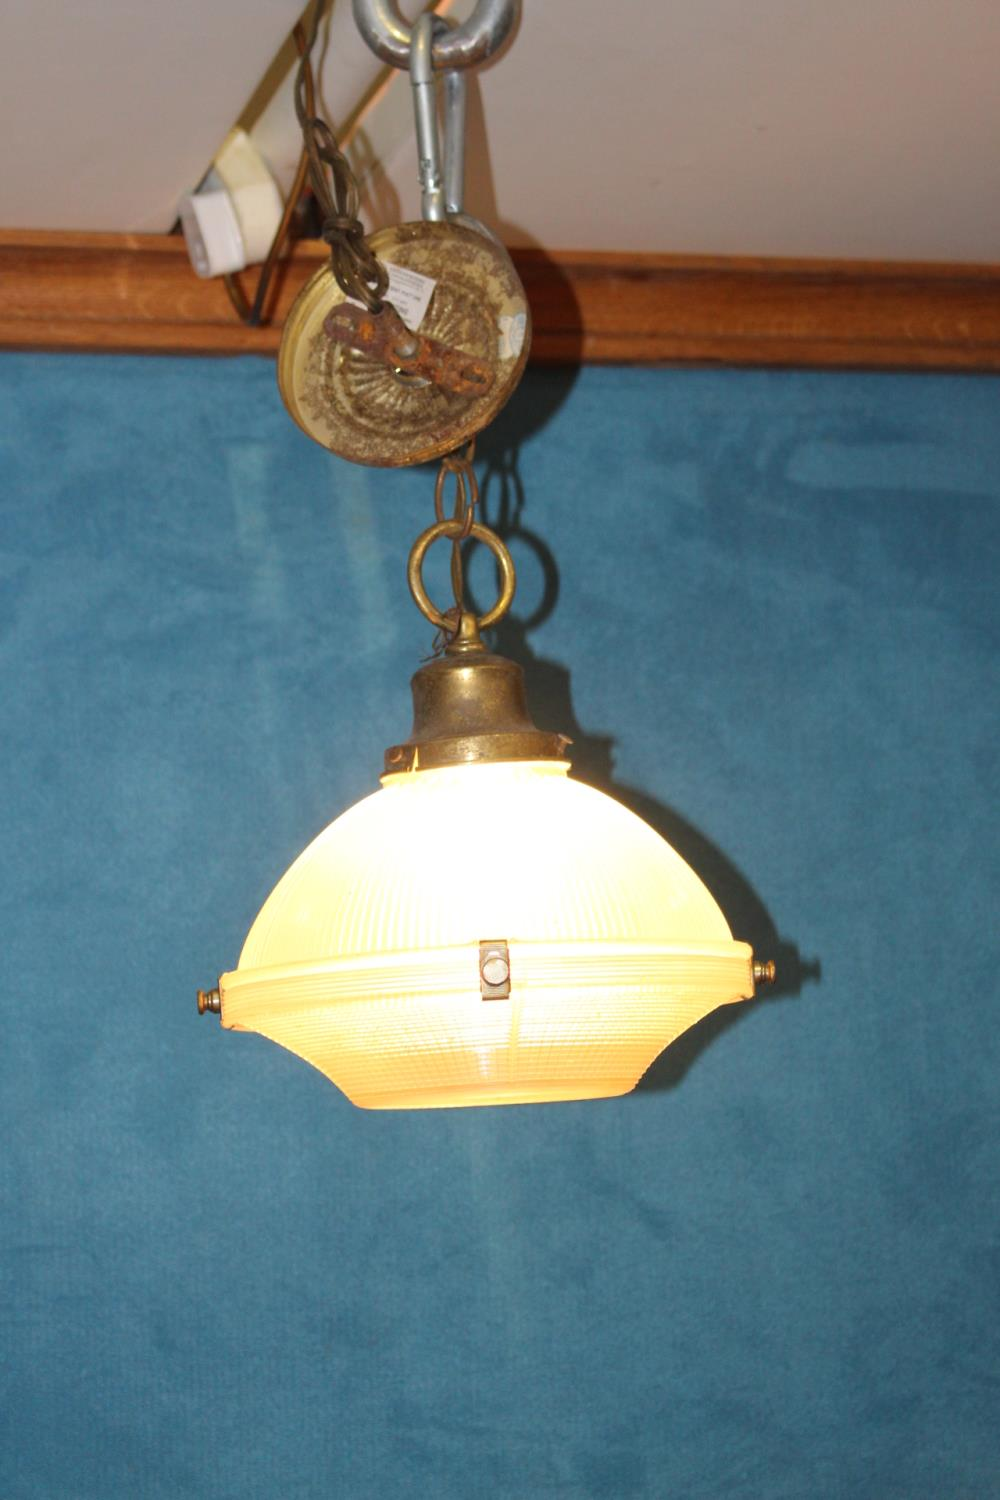 Brass hanging ceiling light - Image 2 of 2